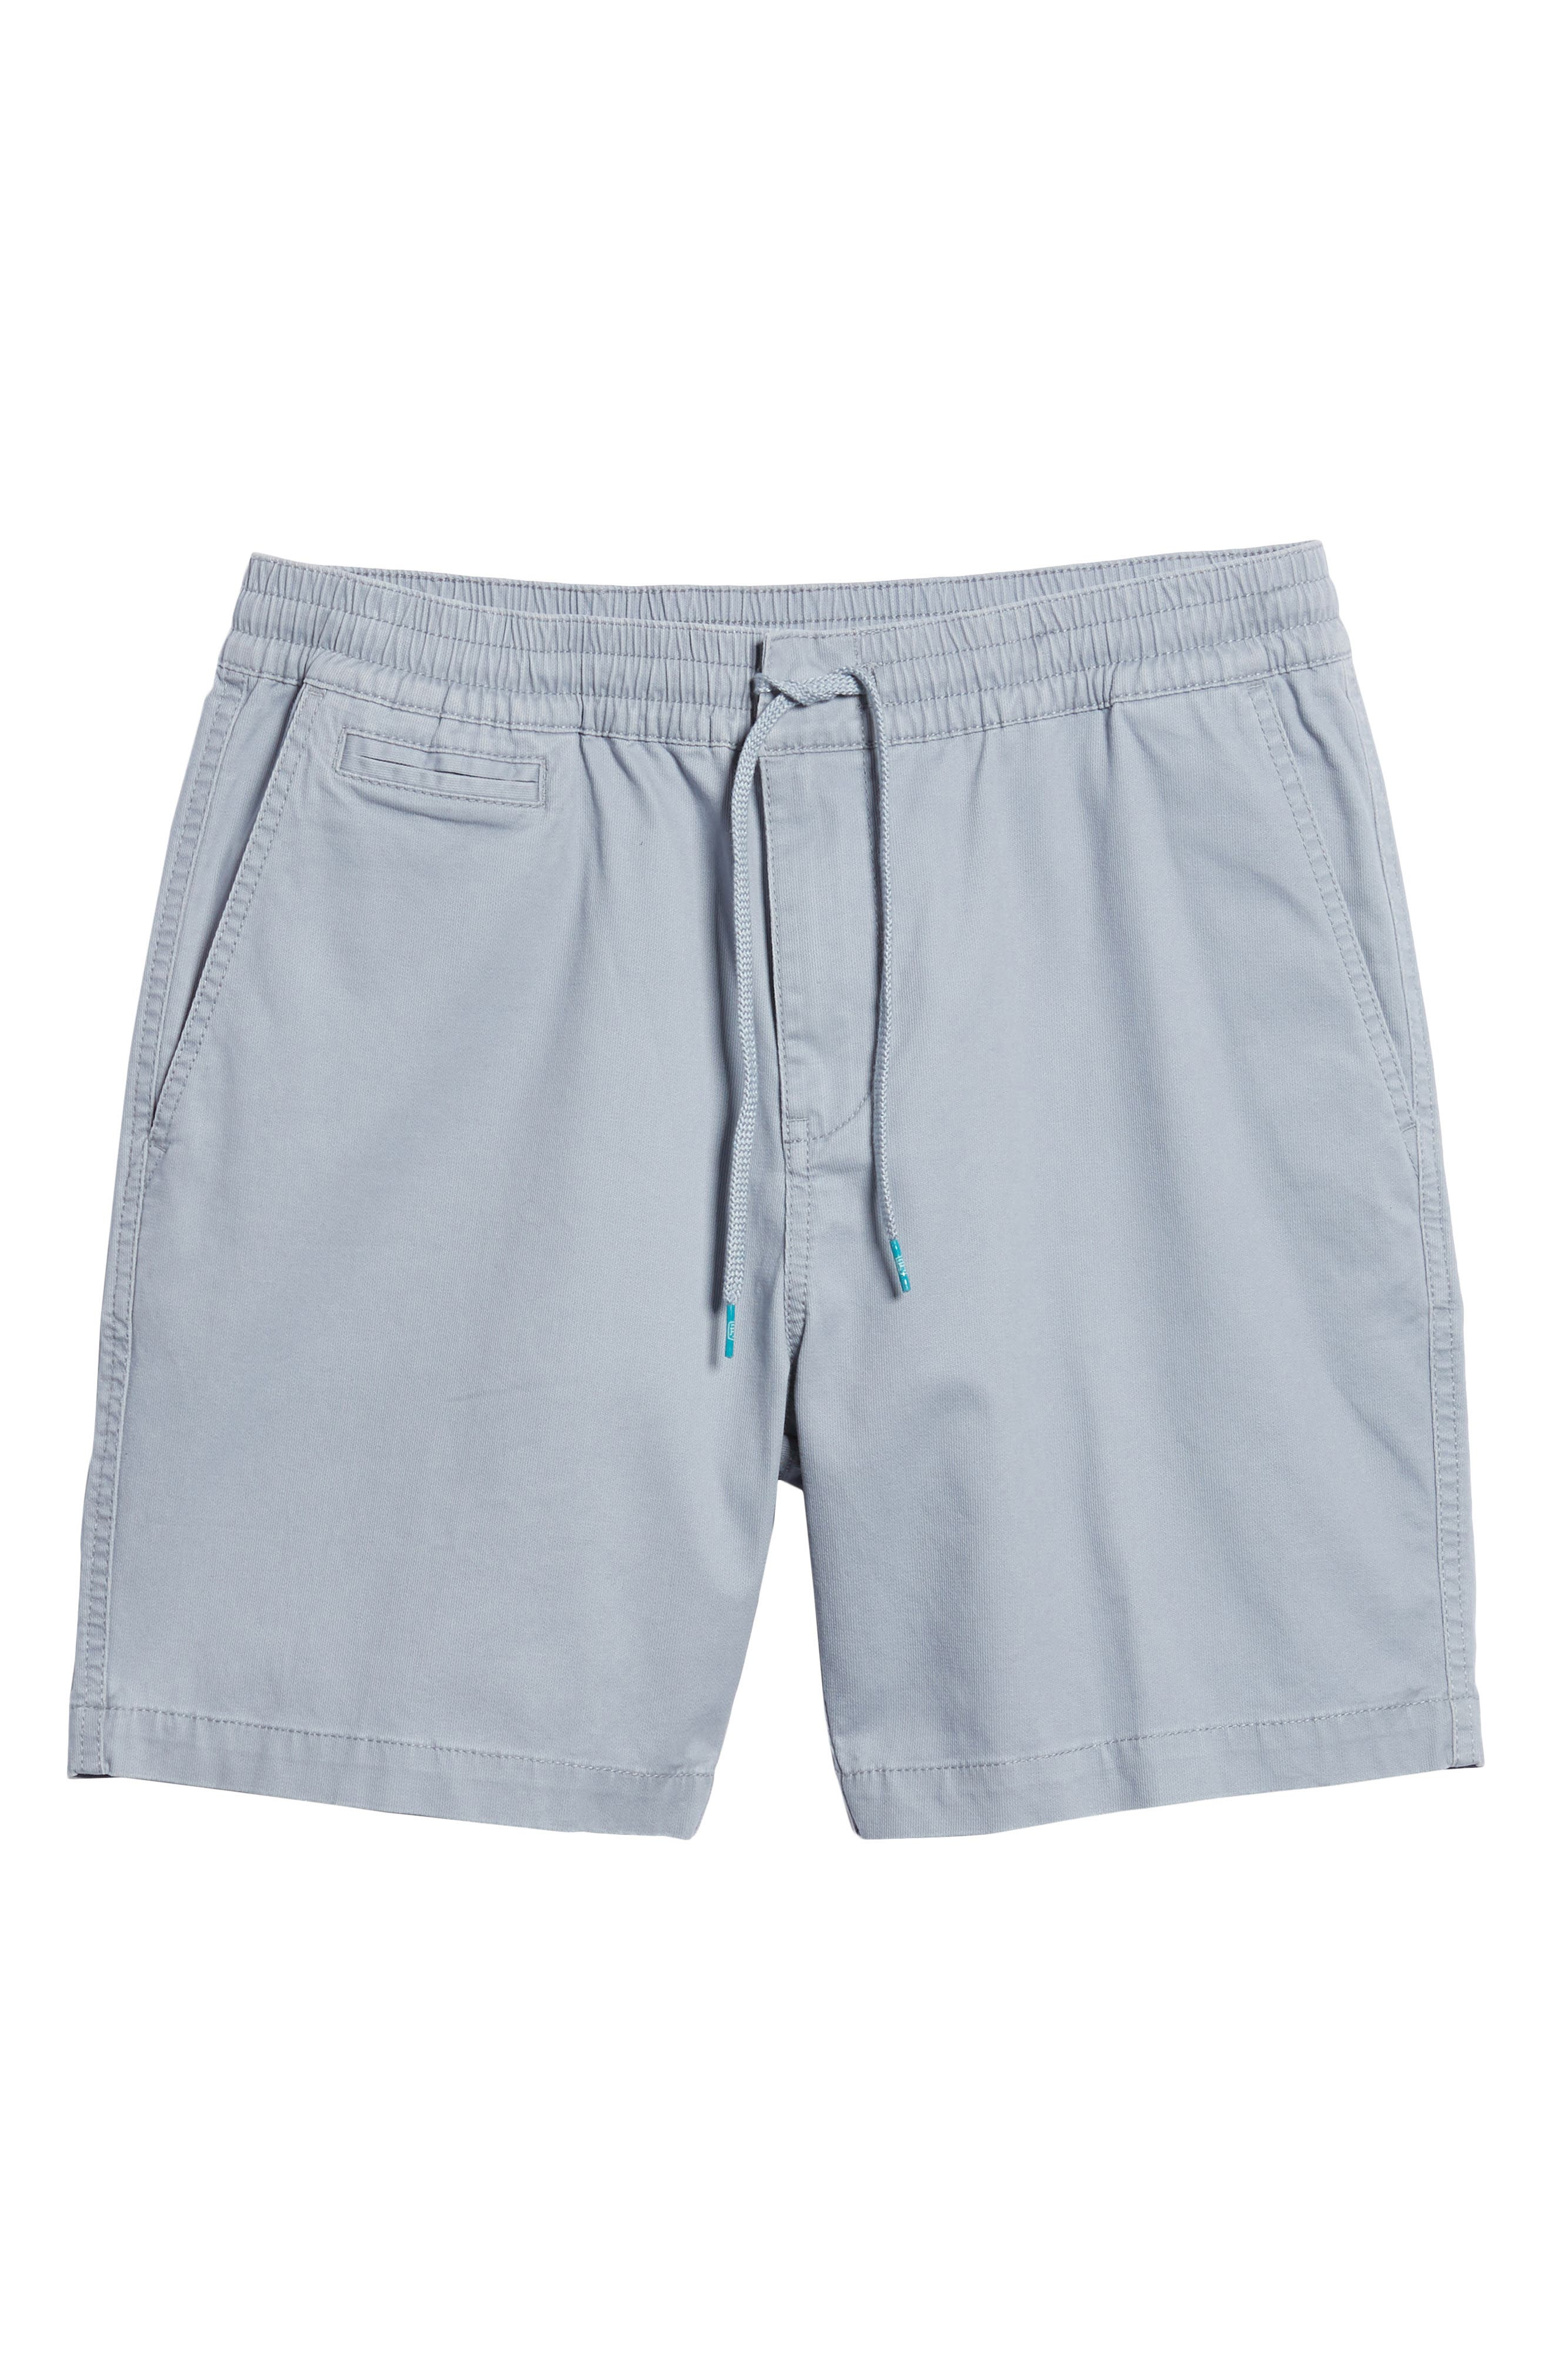 Drawstring Bedford Corduroy Shorts,                             Alternate thumbnail 6, color,                             Silver Blue